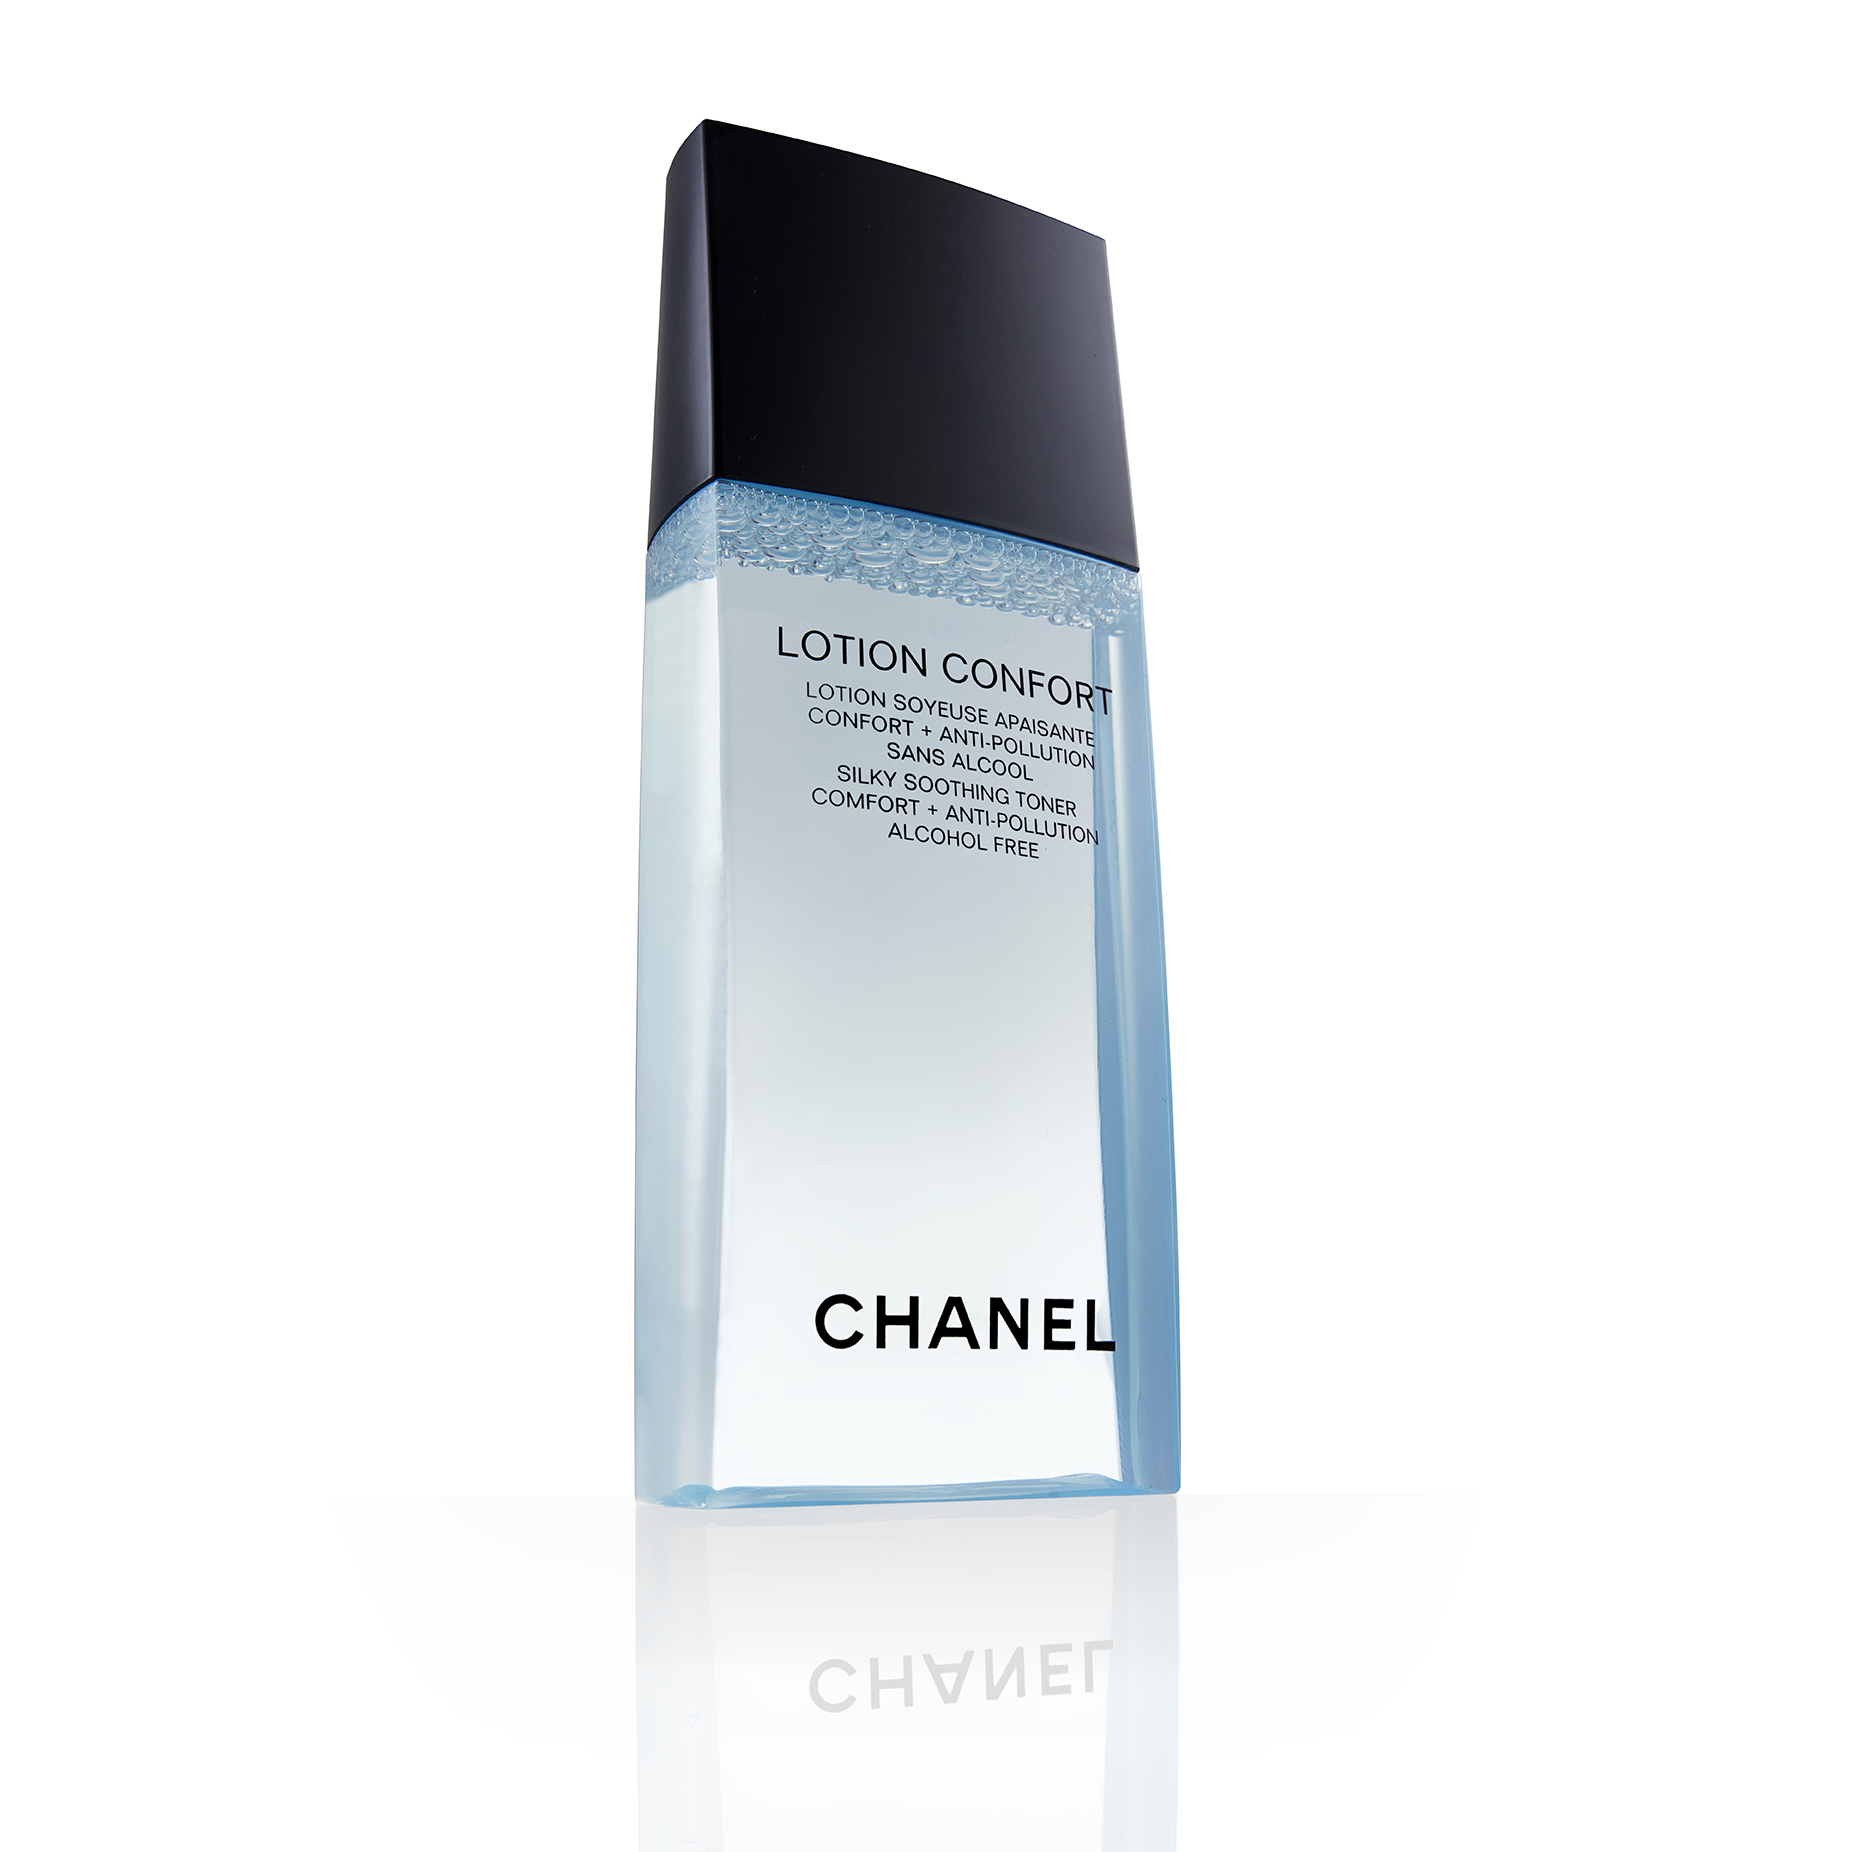 chanel packshot photography clipping path cut out product photography studio lighting professional white background cosmetics.jpg